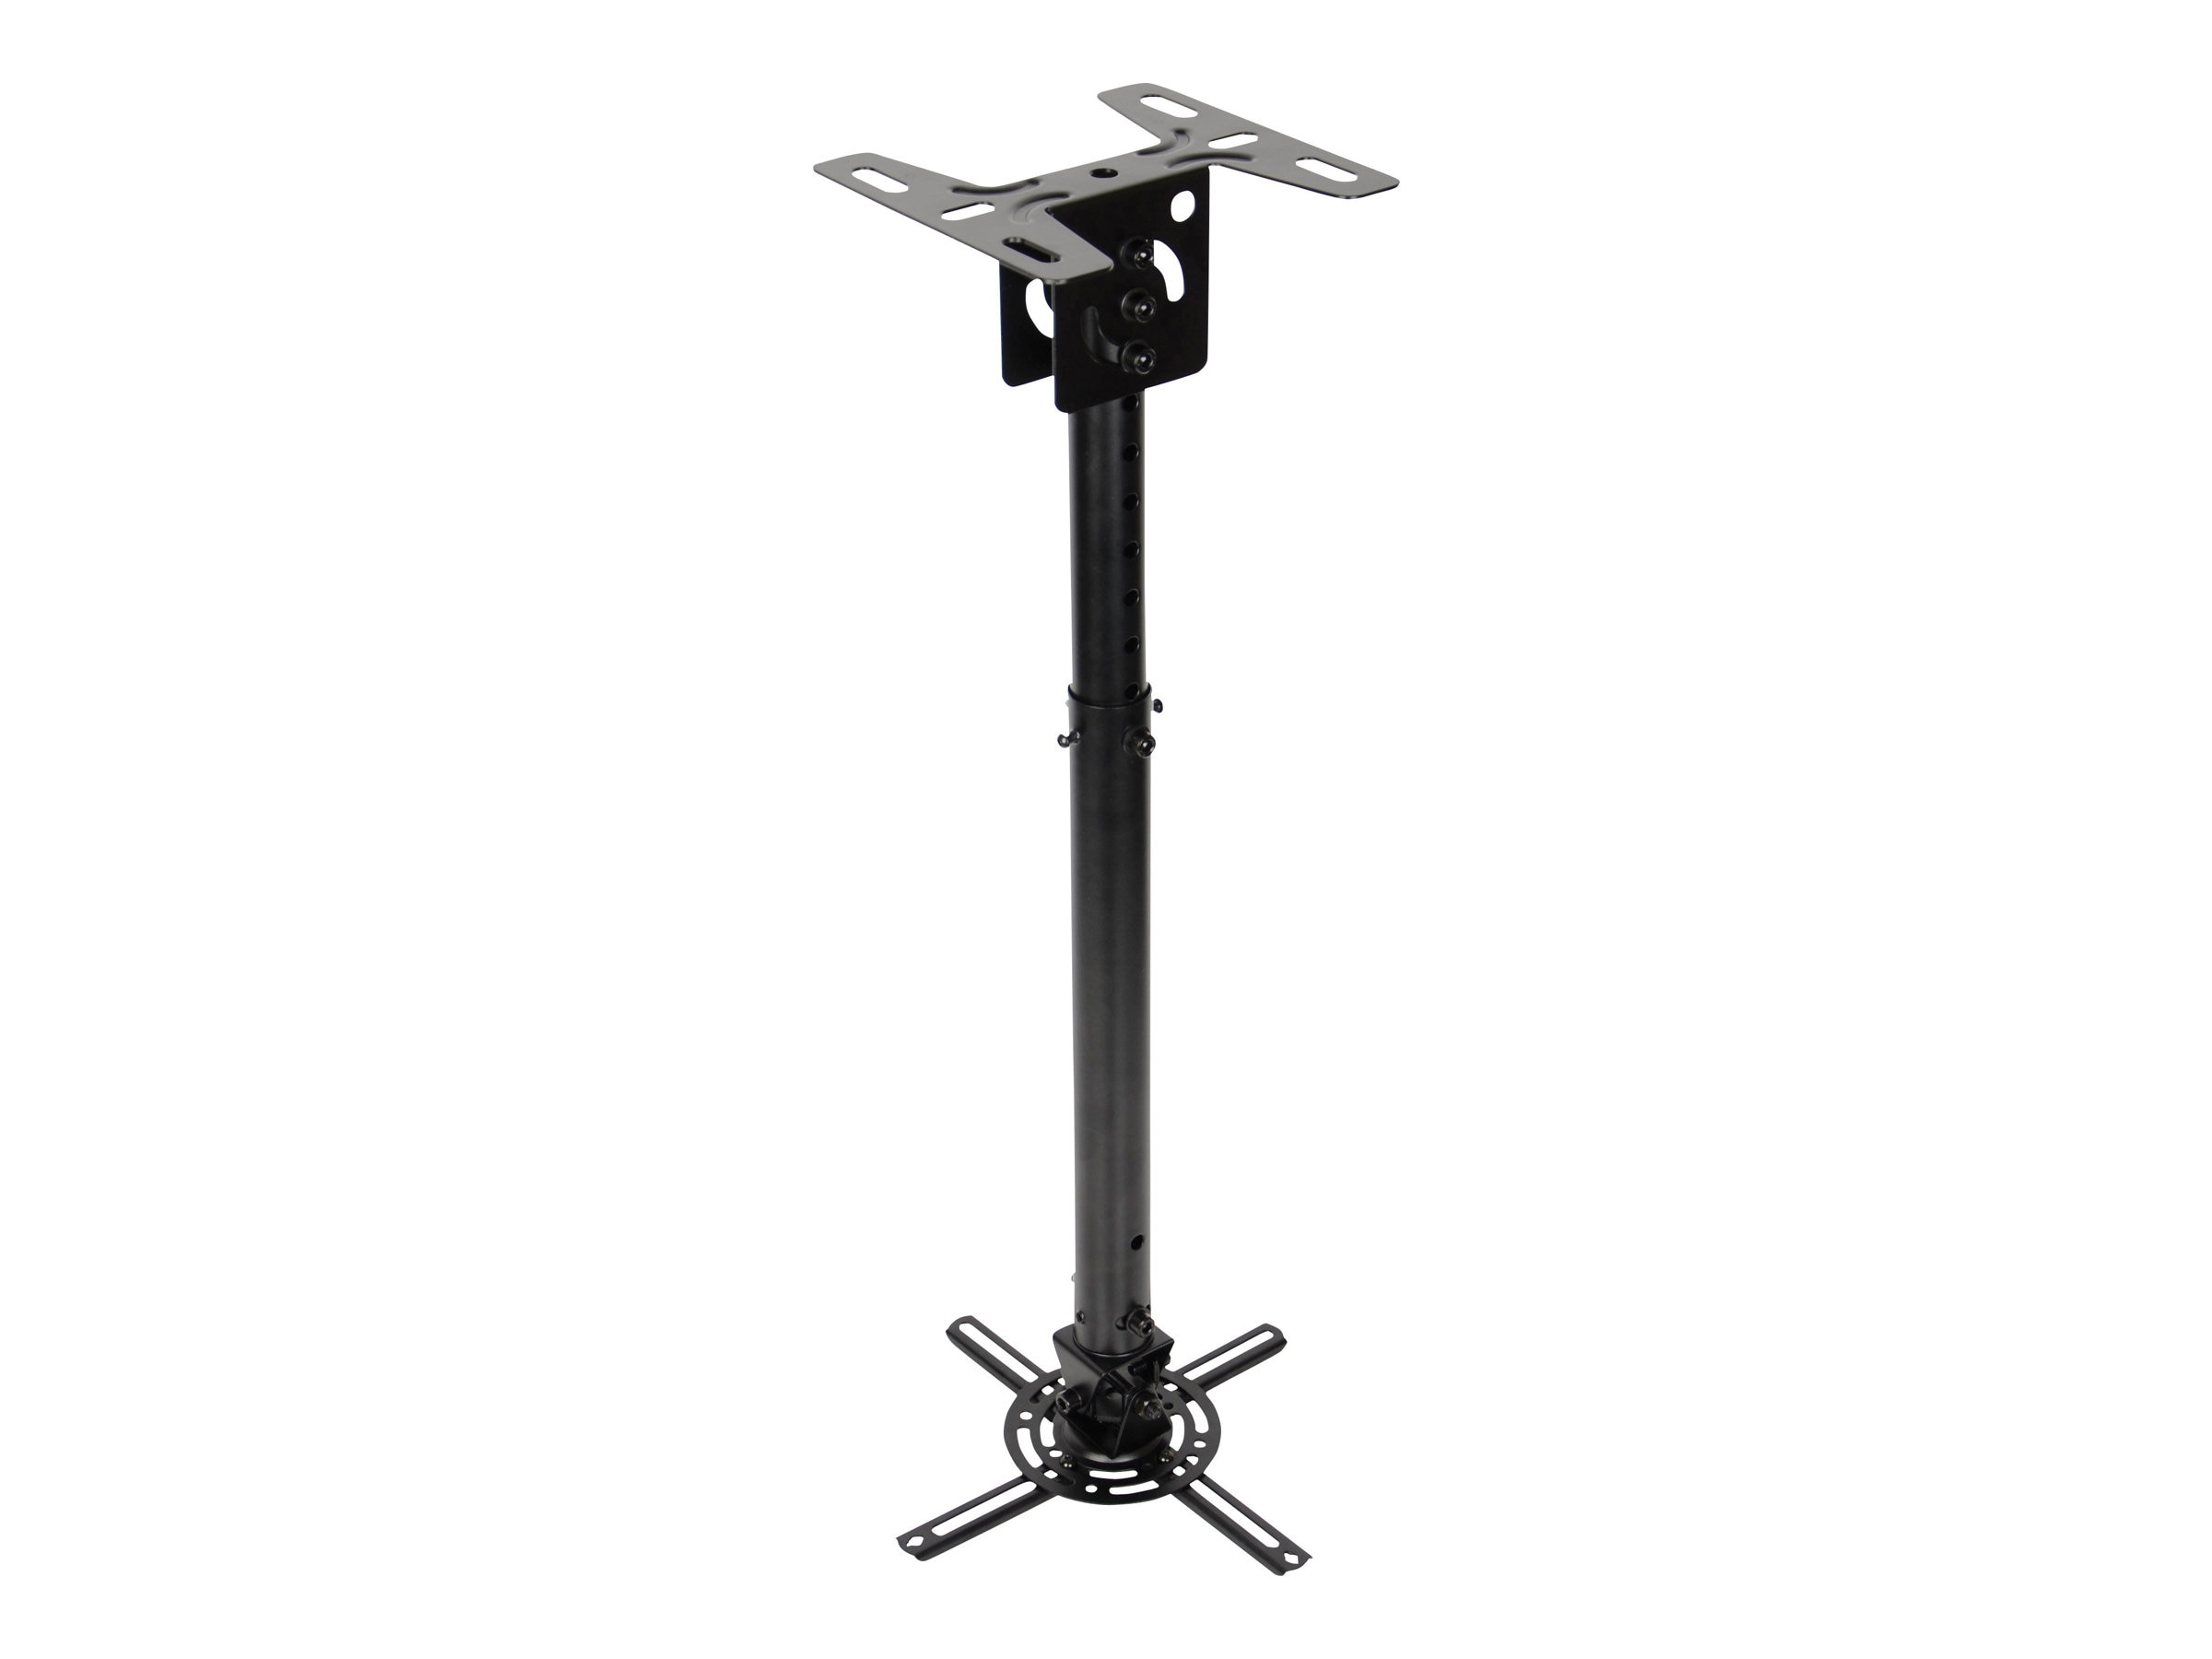 Optoma Universal Projector Pole Mount for Projectors up to 33 pounds, Black